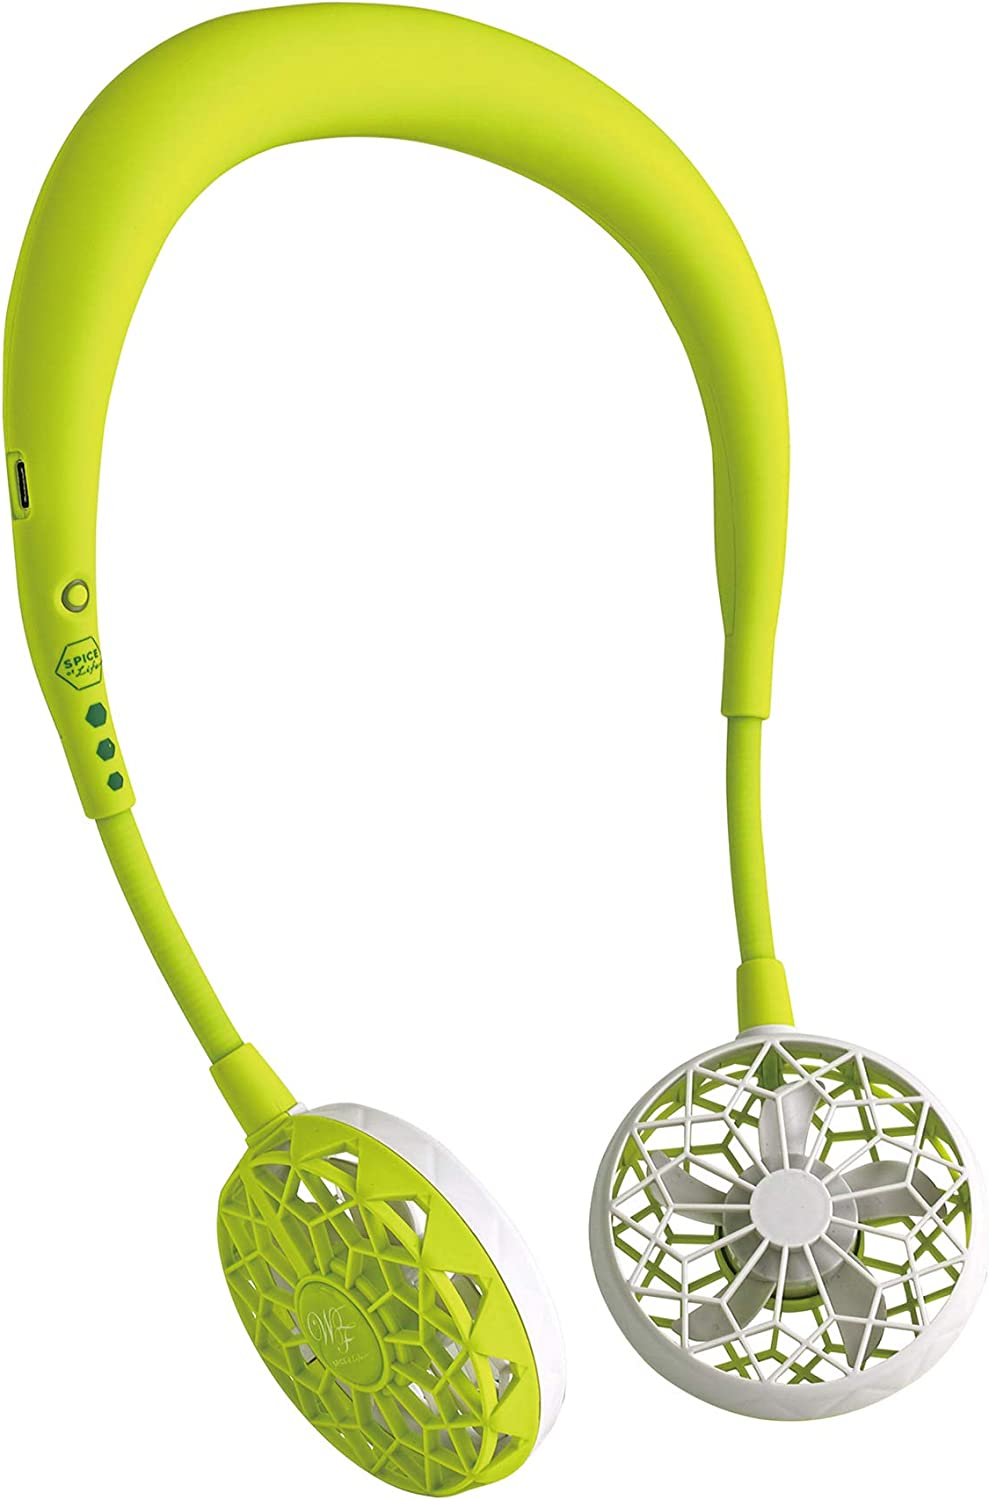 SPICE OF LIFE Portable Neck Fan - Hands-Free Wireless W Fan 2nd Edition, Light Green - 2000mAh USB Rechargeable Battery, 2.5 to 7 Hour Life, Flexible Arms, 3 Speed Settings, for Adults, Minimal Noise